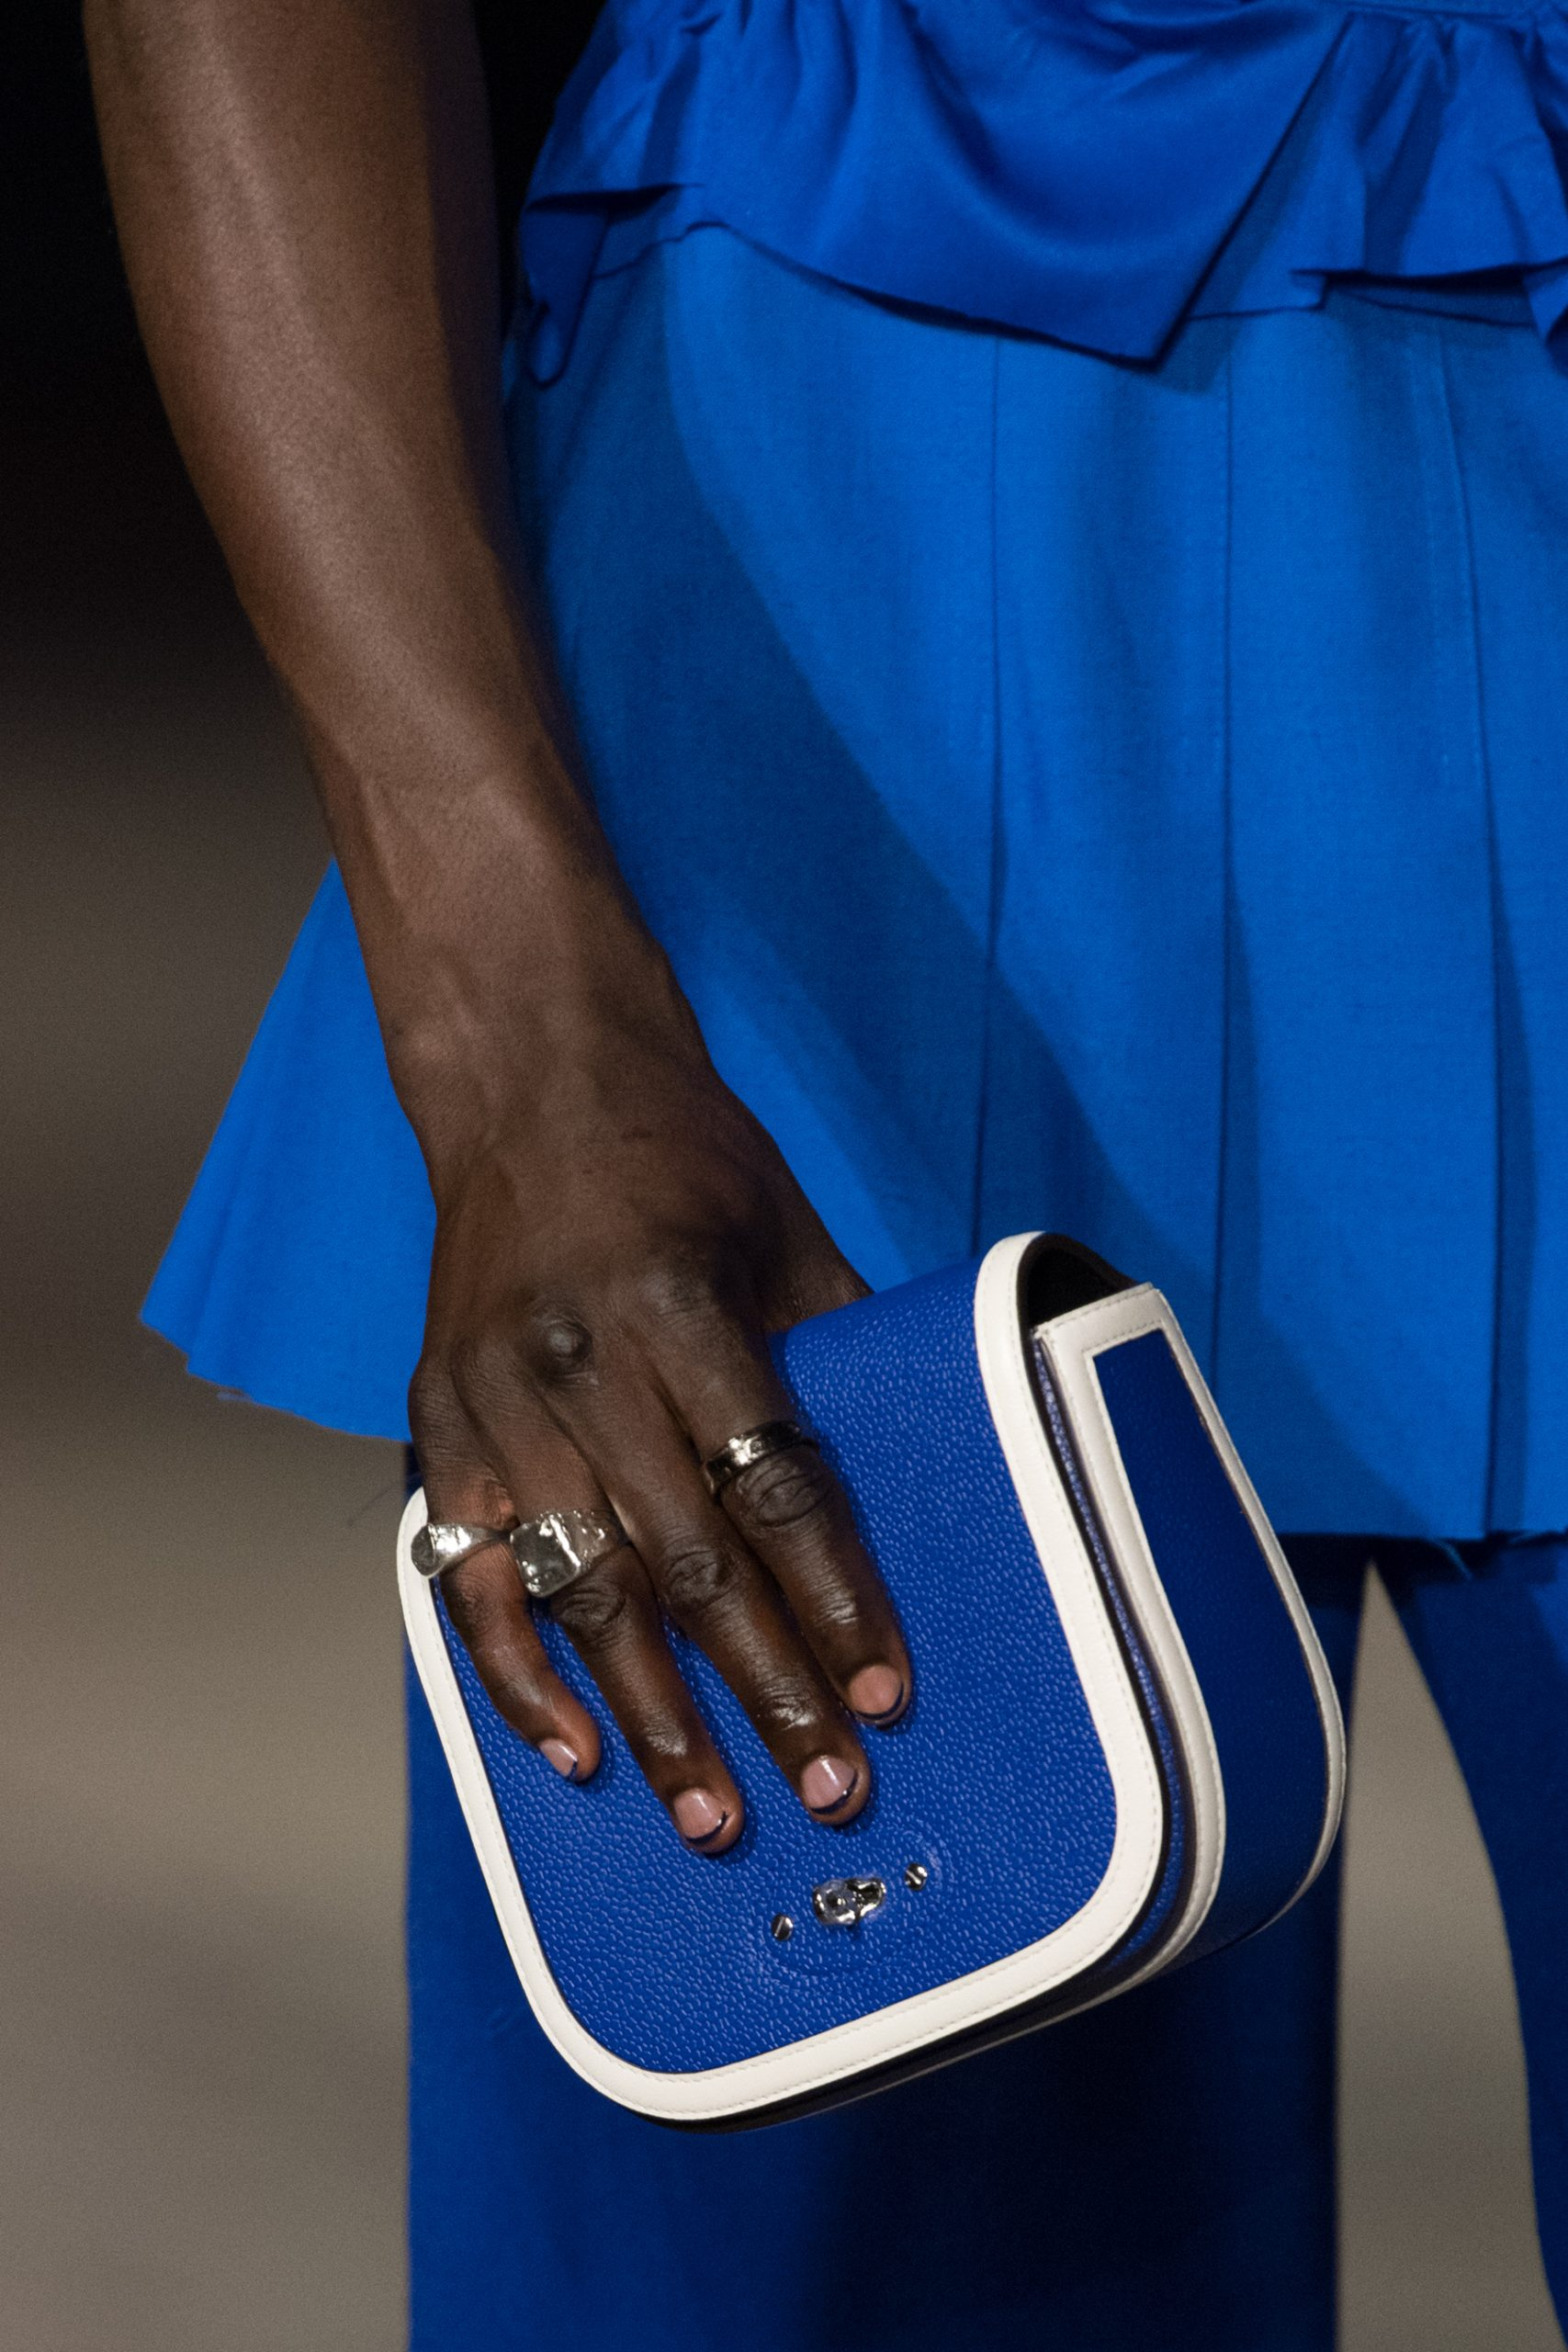 Richard Malone X Mulberry Spring 2022 Details Fashion Show